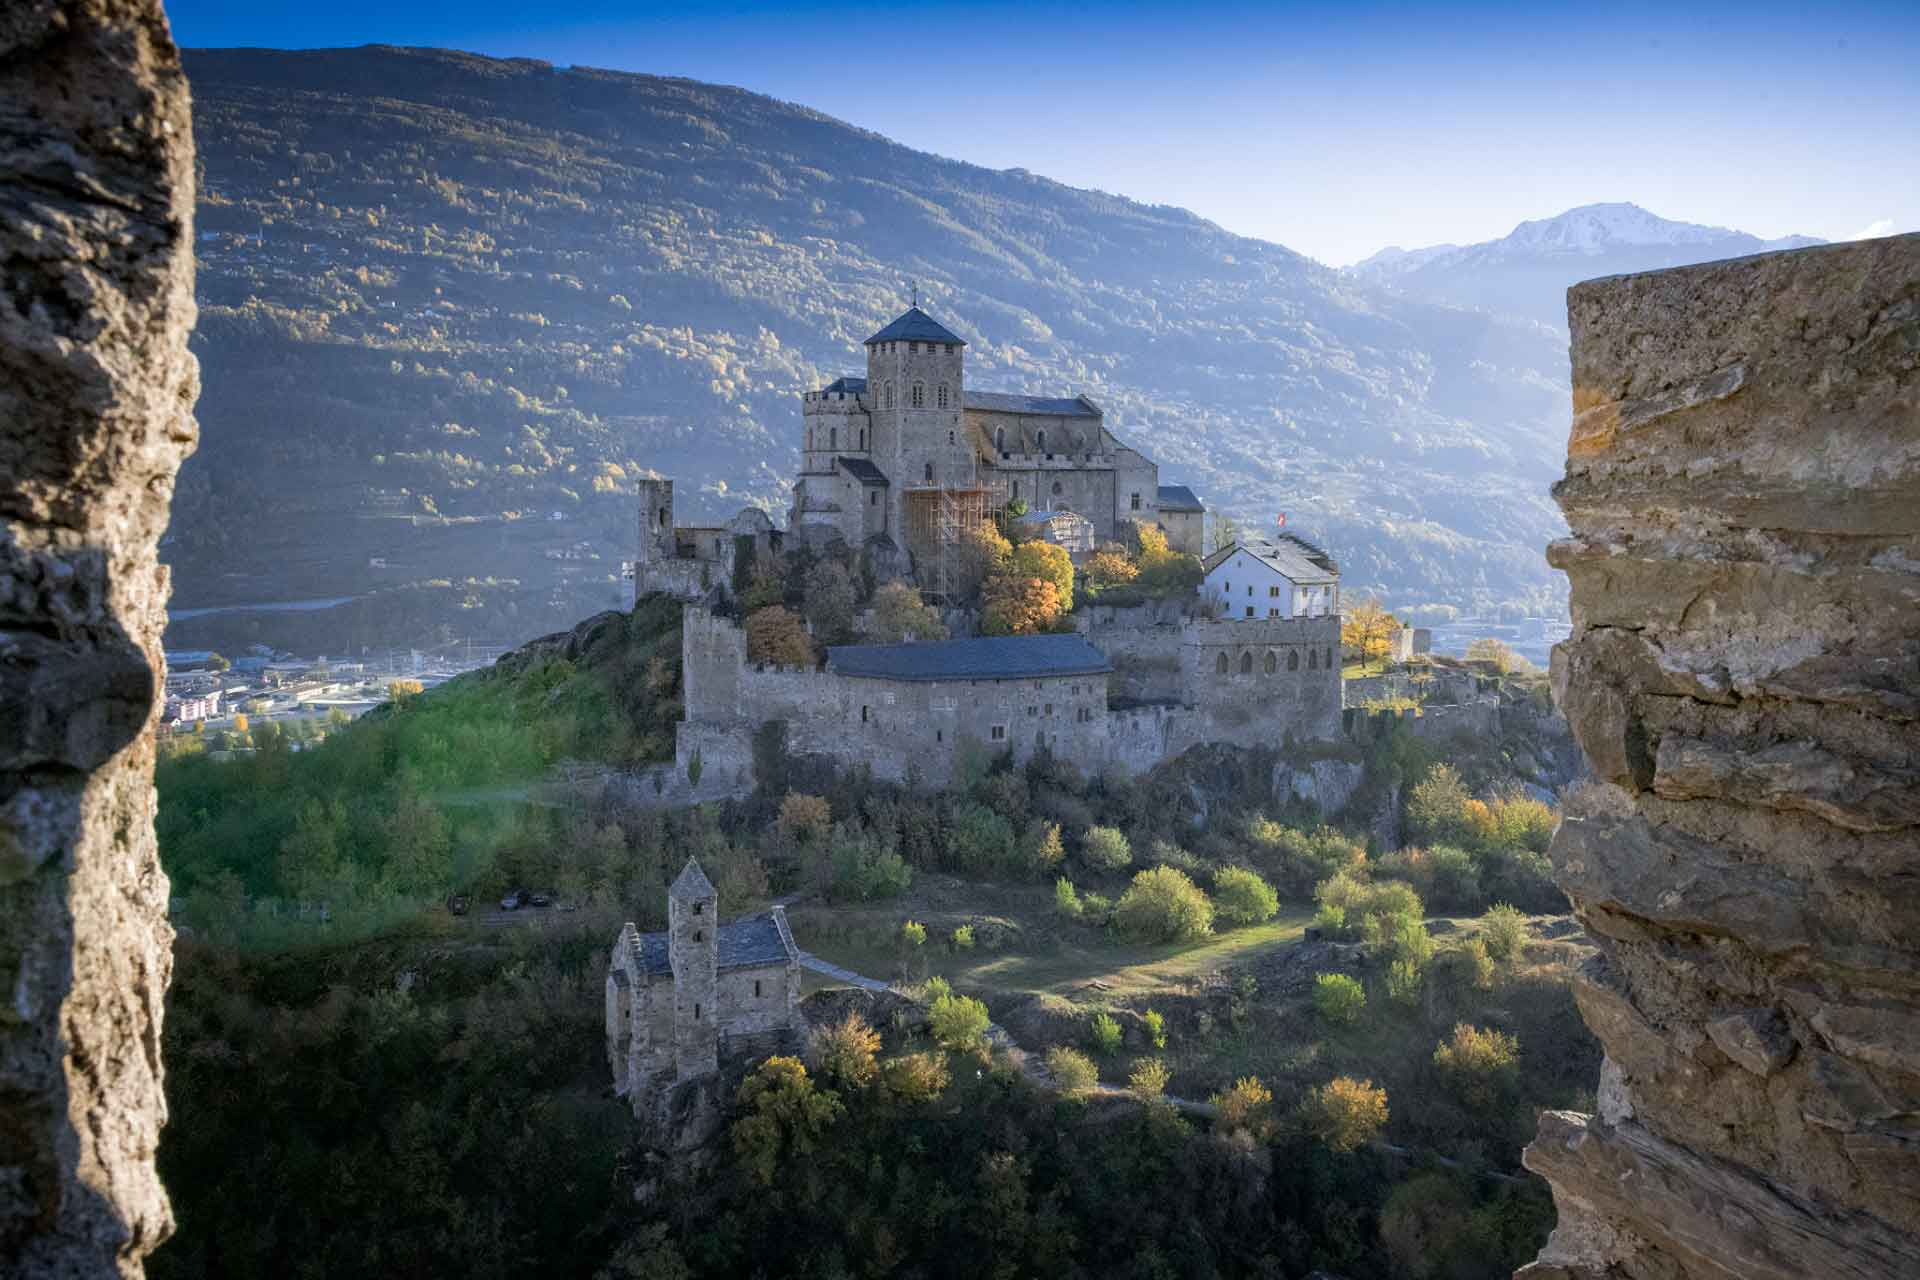 Valère castle in Sion.